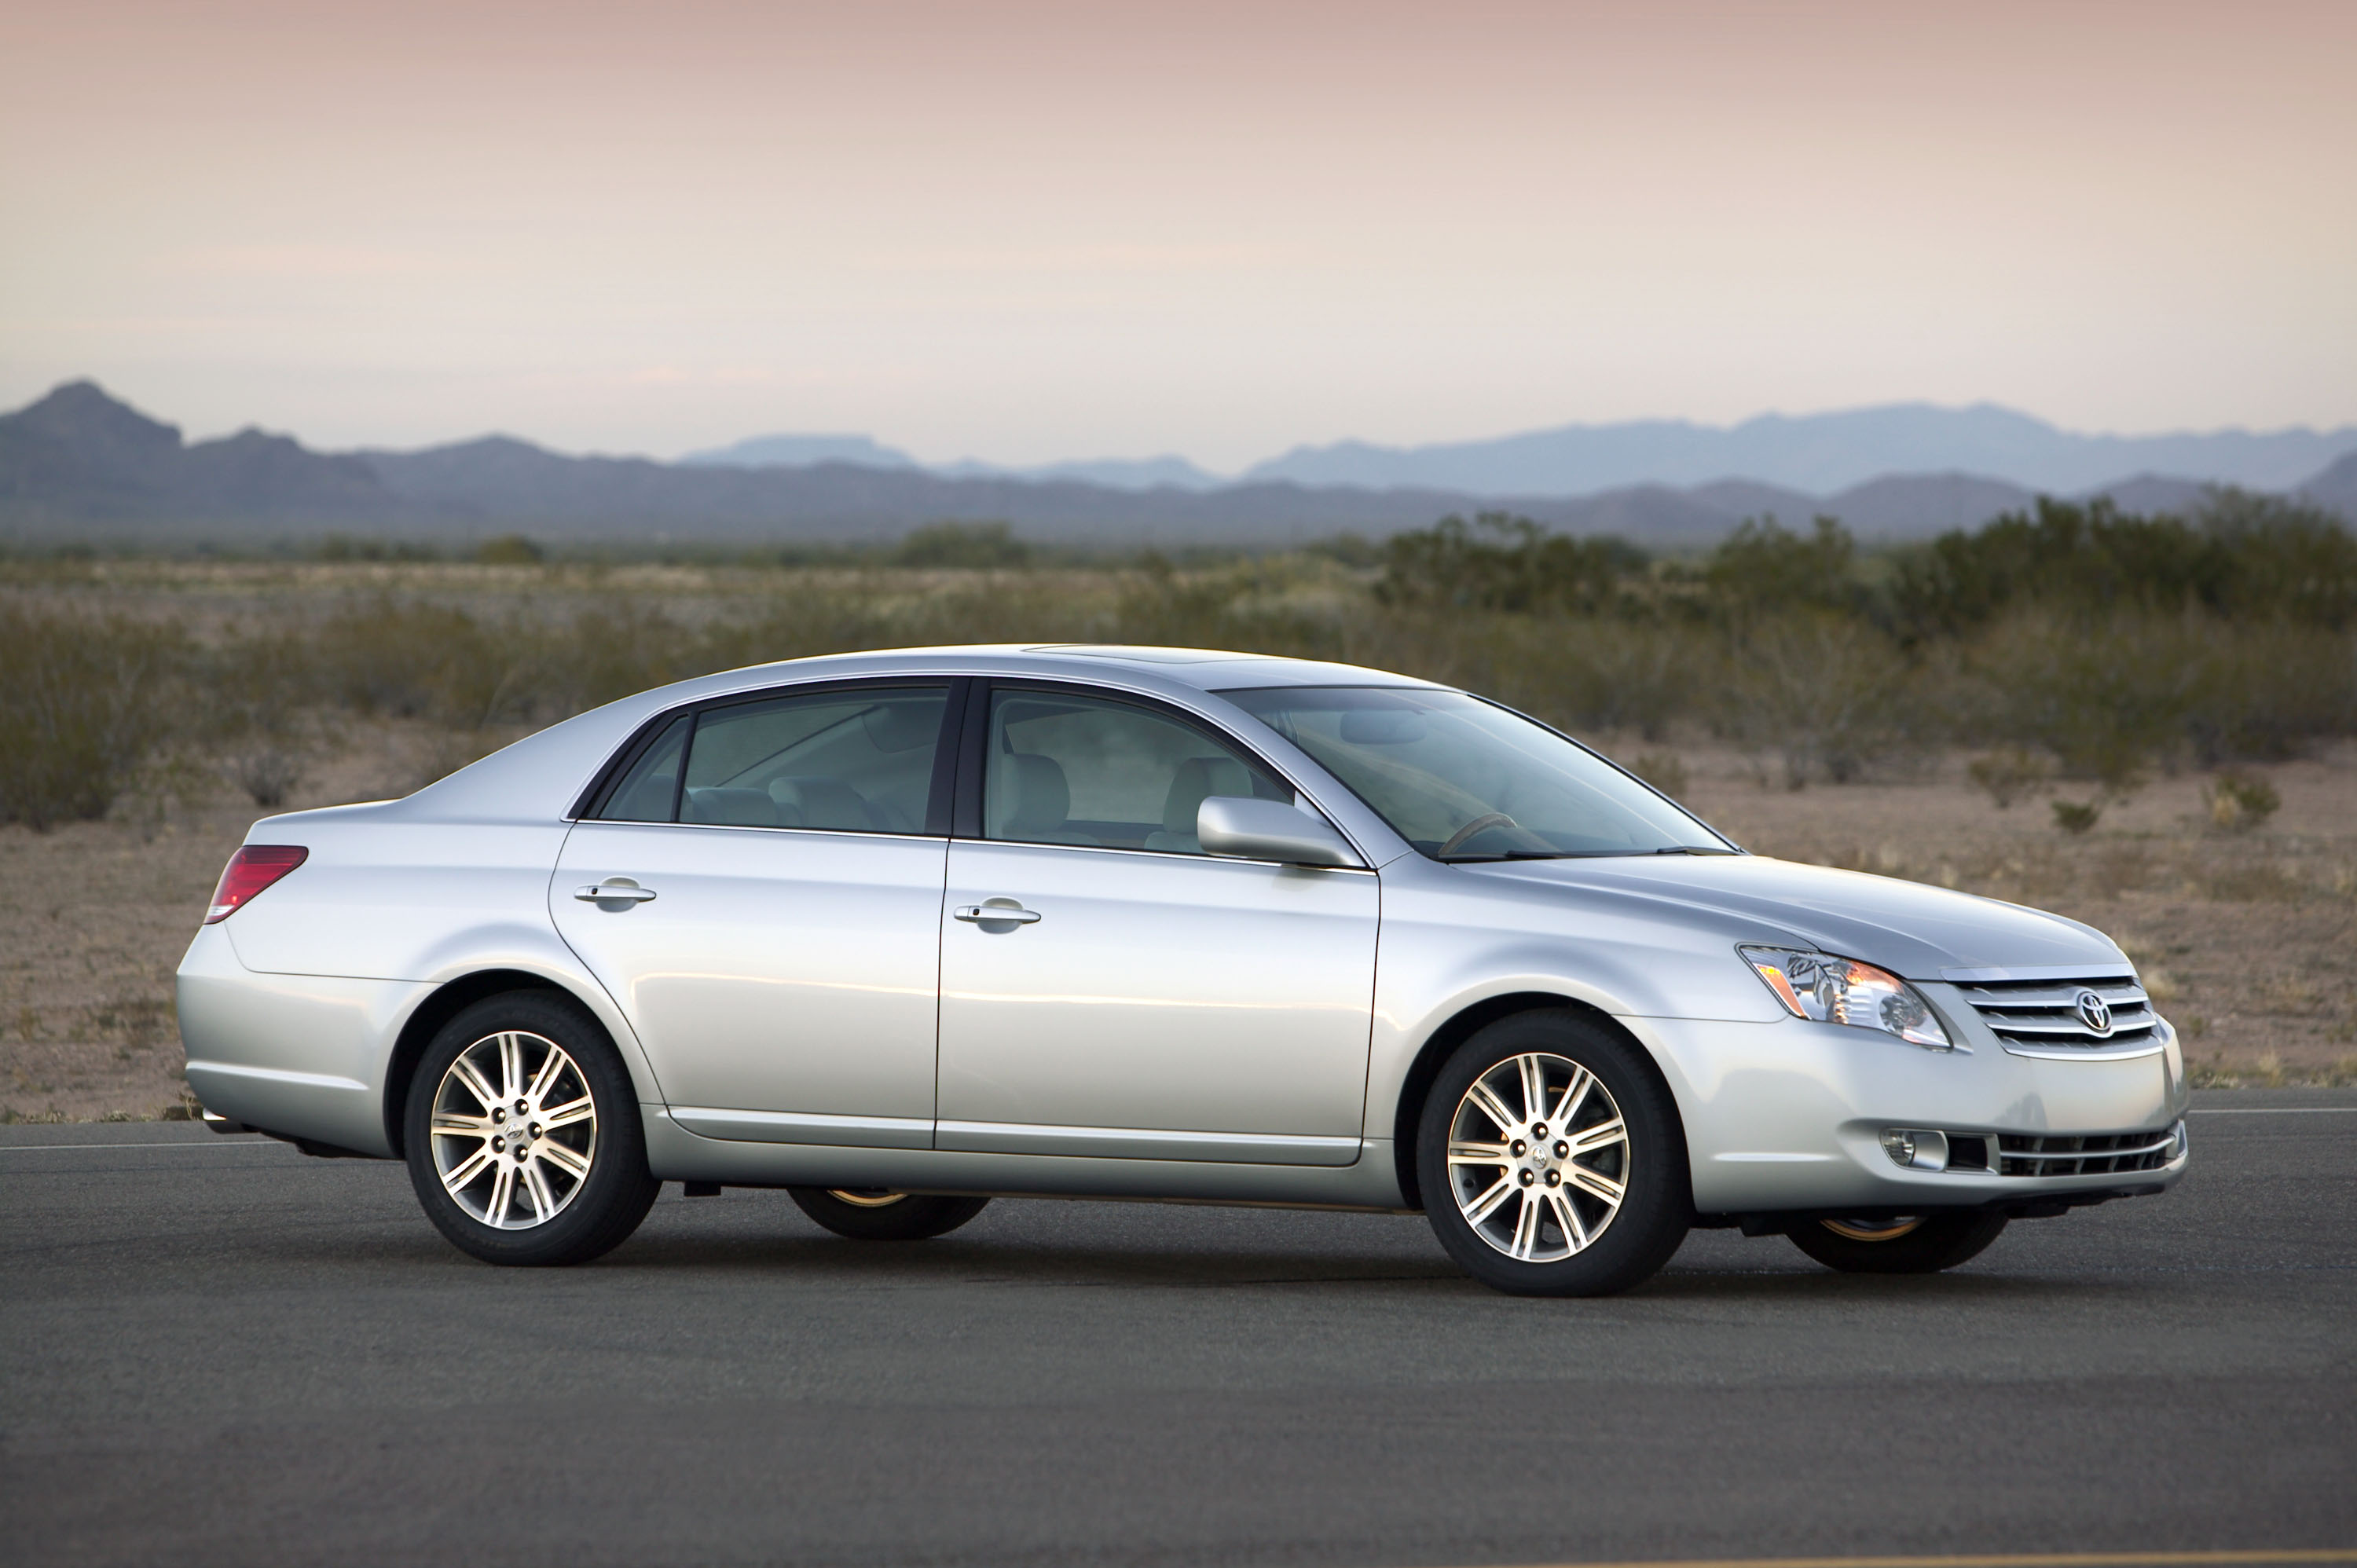 Toyota Recall Older Higher Mileage Vehicles More At Risk